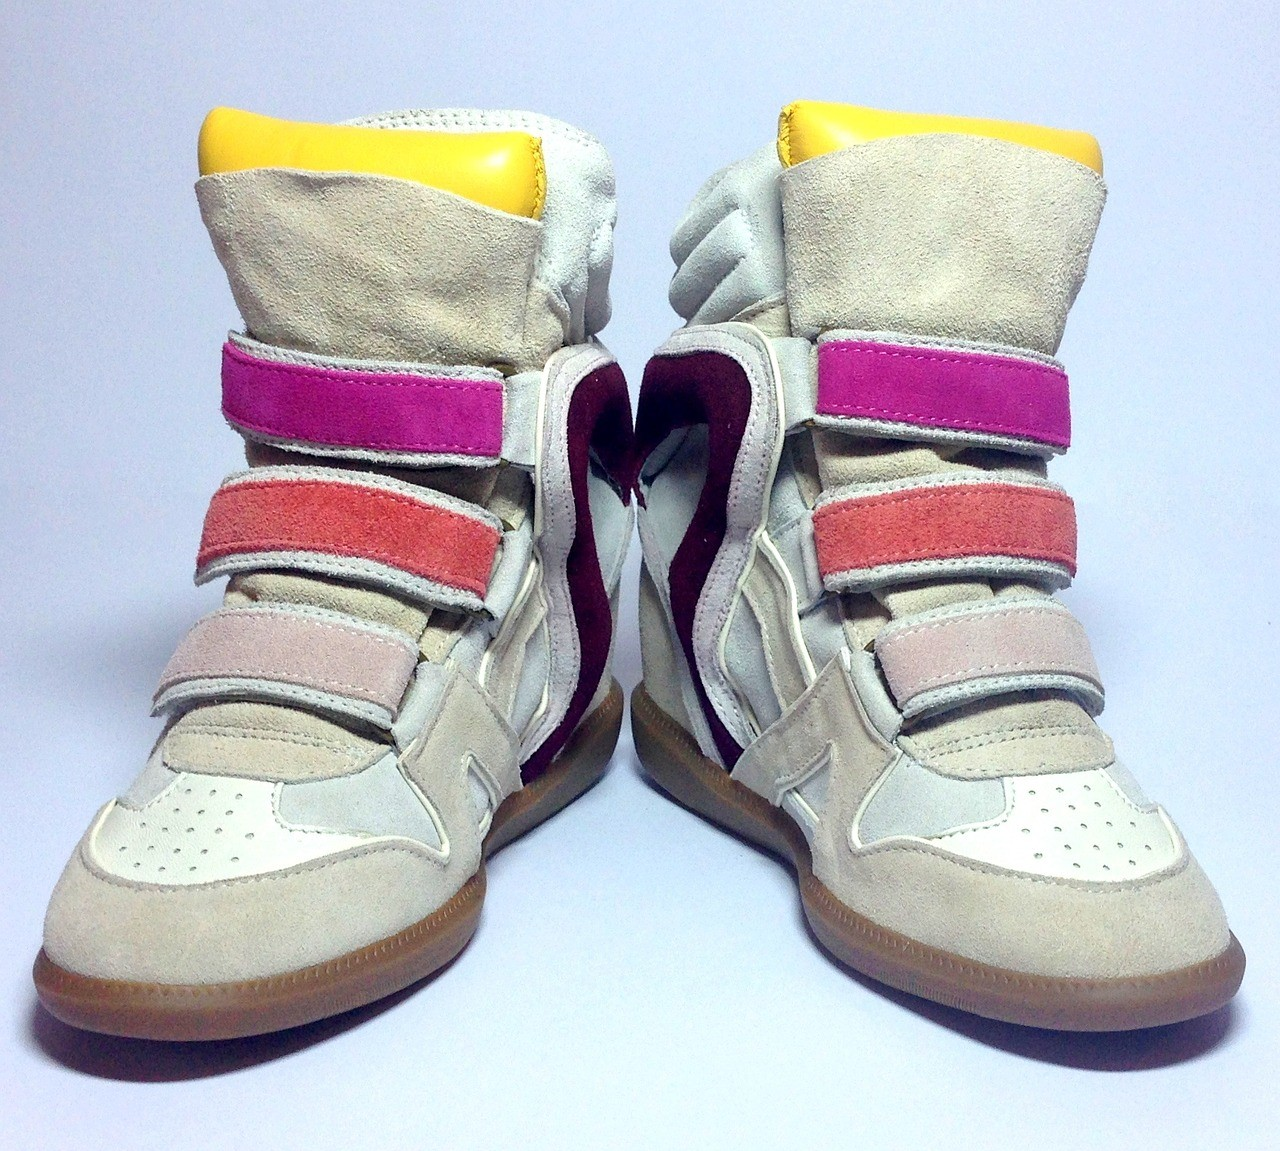 Bulky lifestyle shoes by Isabelle Maranta